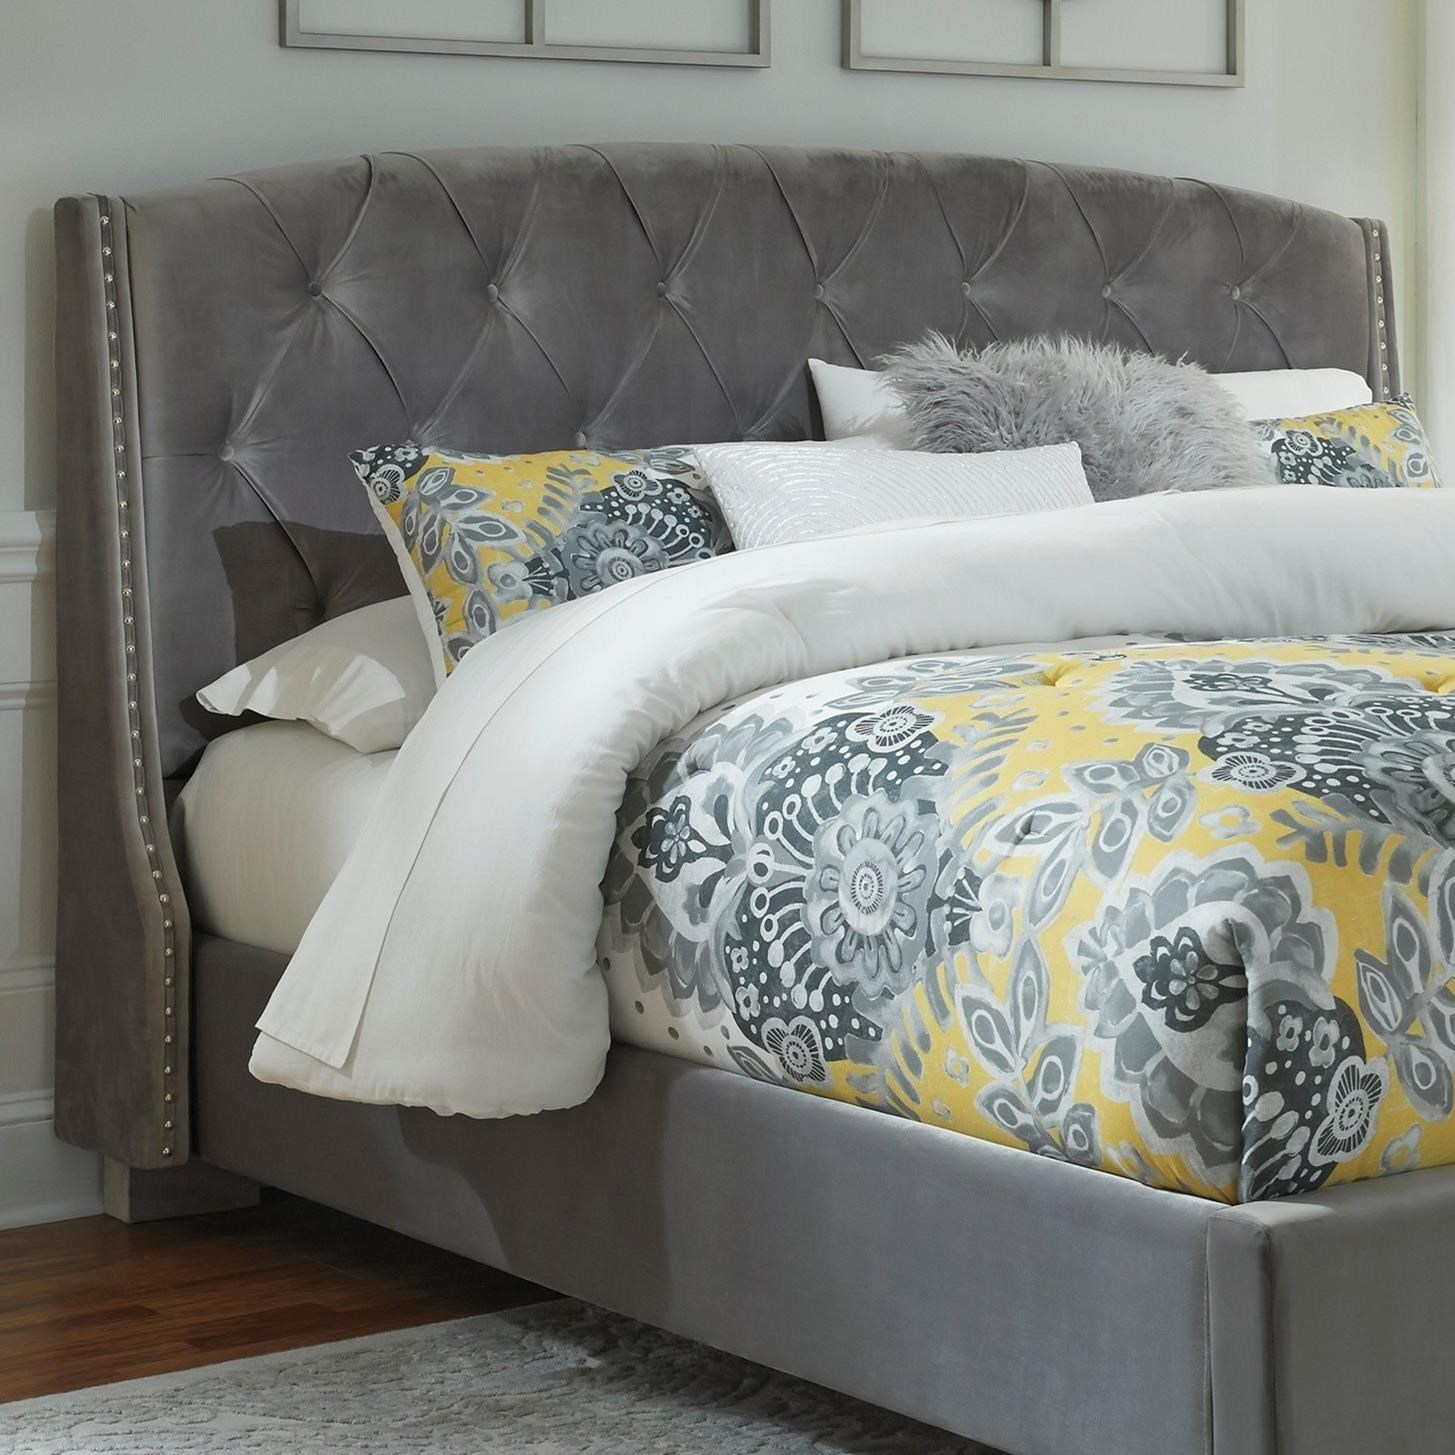 Bed Headboard Kasidon Queen Upholstered Headboard In Gray Velvet By Signature Design By Ashley At Sam Levitz Furniture